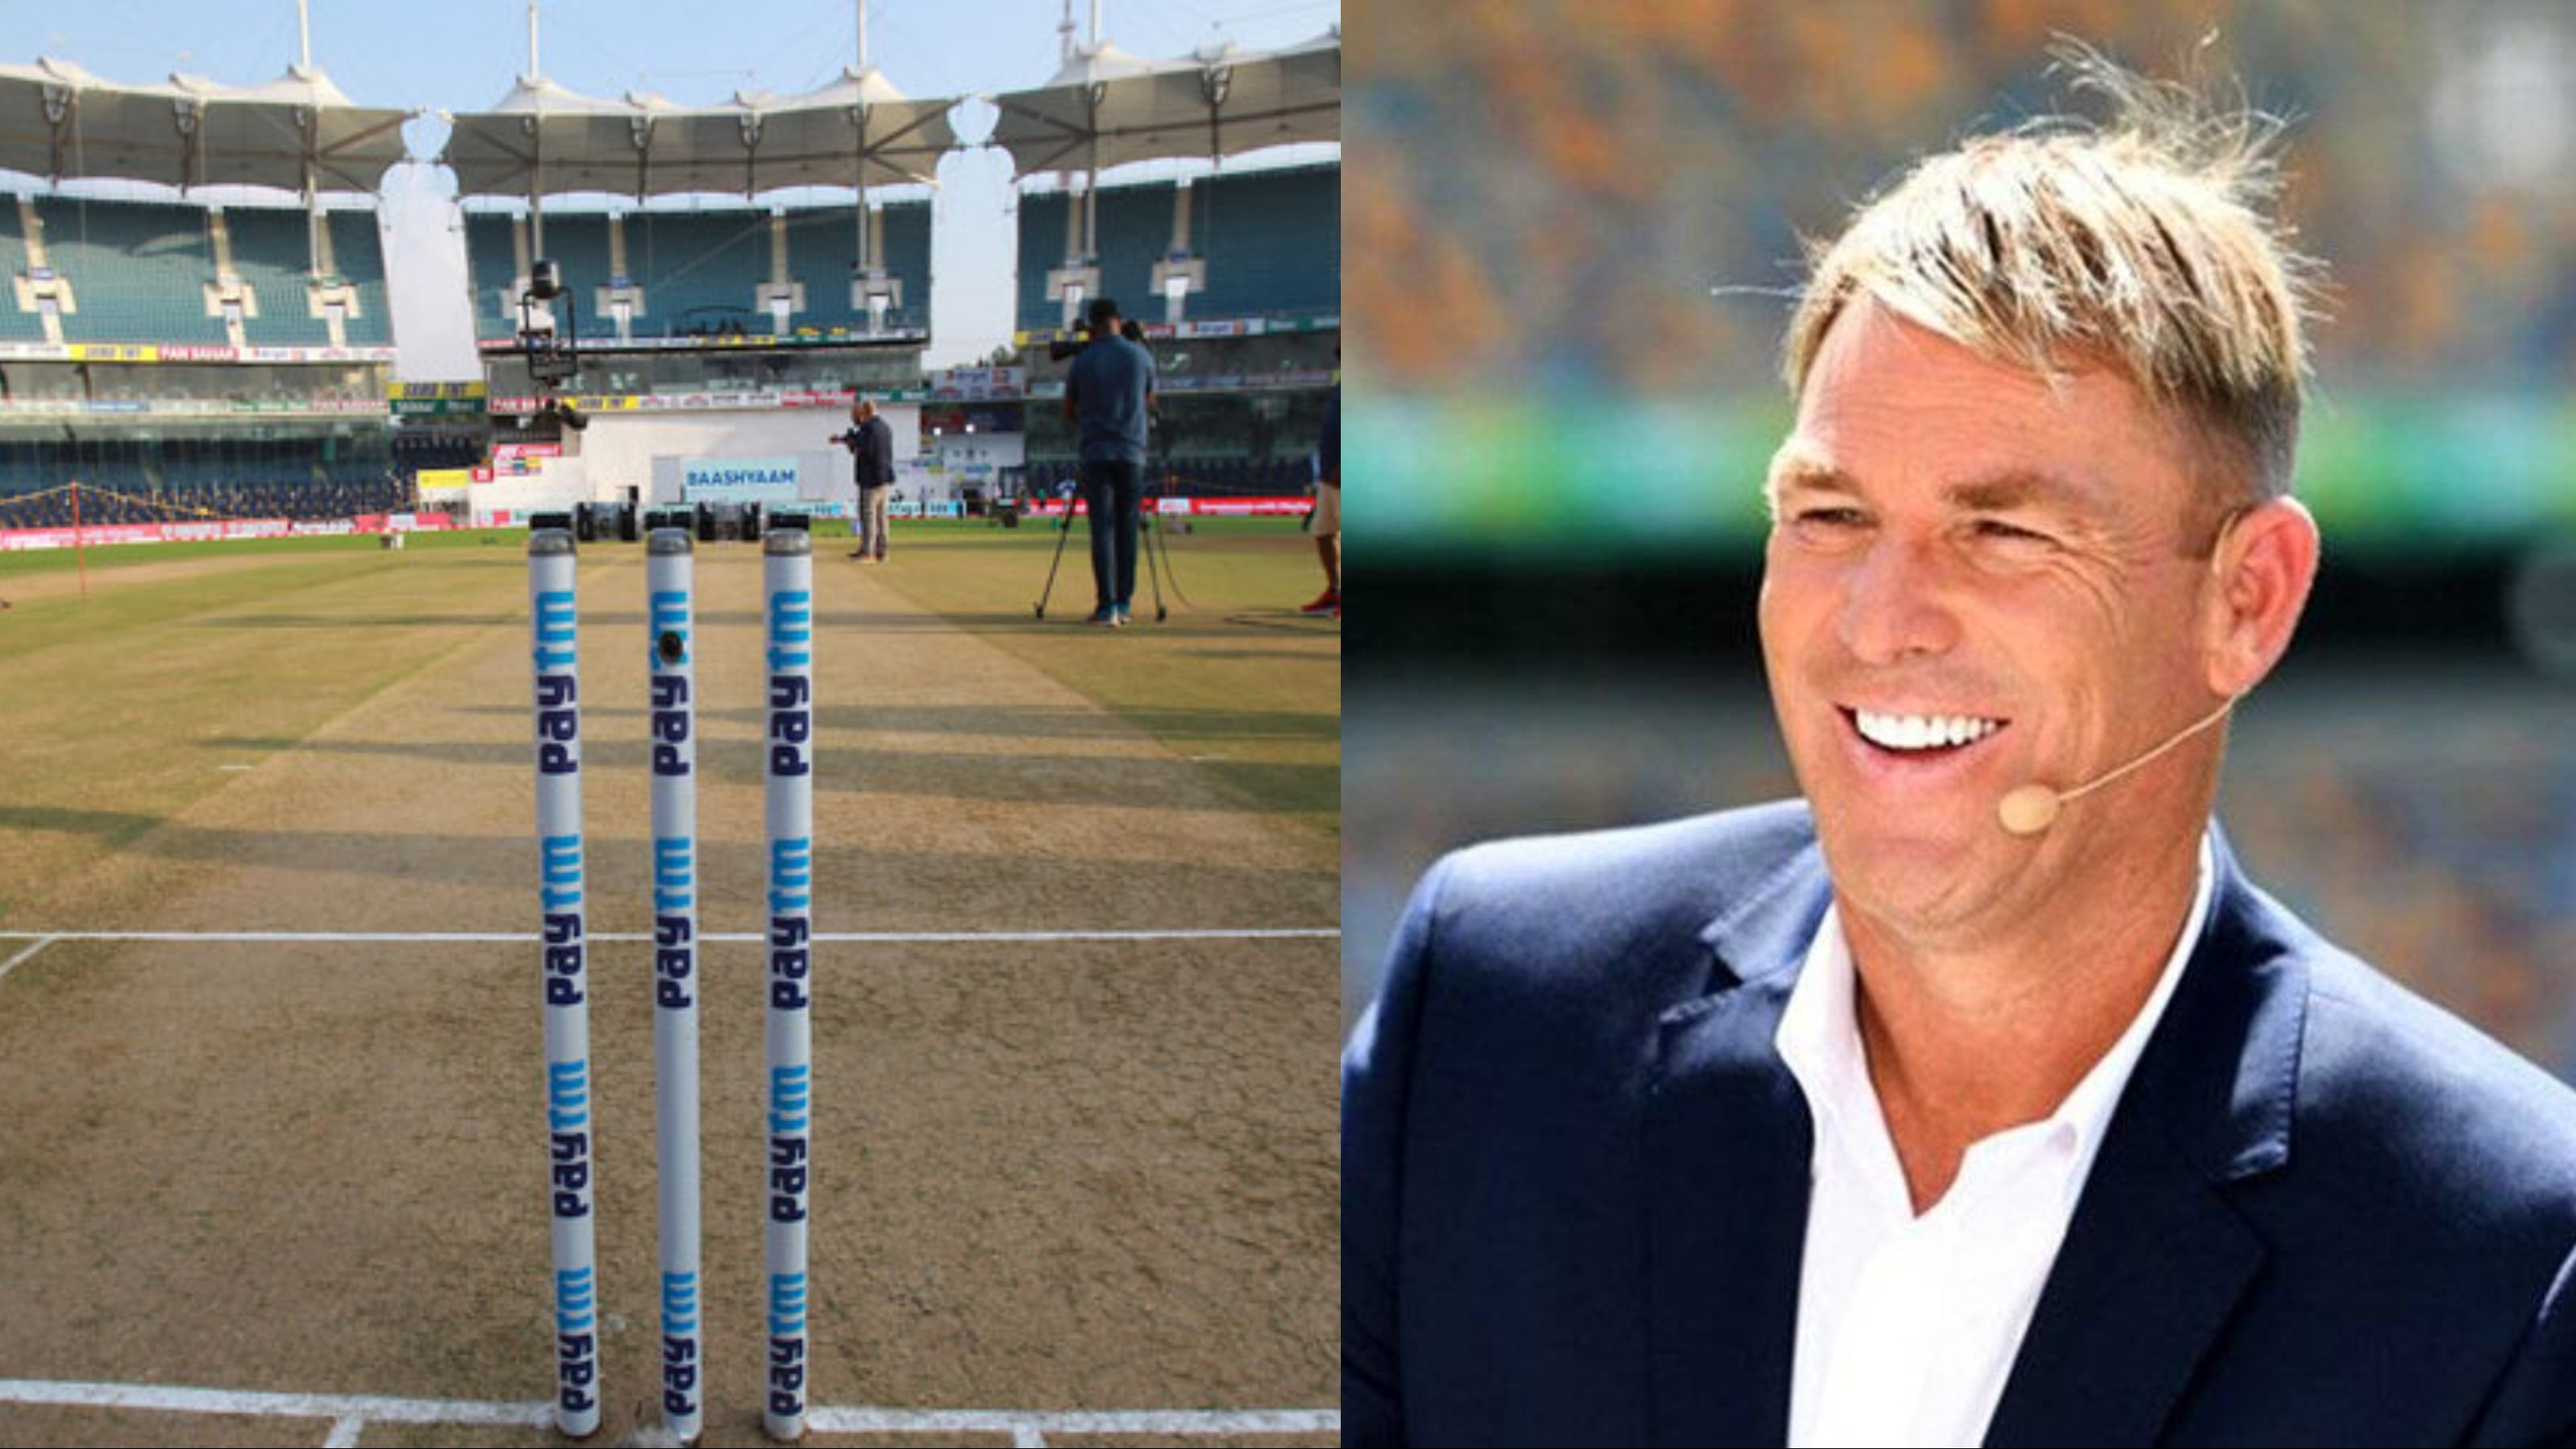 IND v ENG 2021:  Shane Warne takes dig at former cricketers for criticizing Chennai pitch as India posted 615 runs